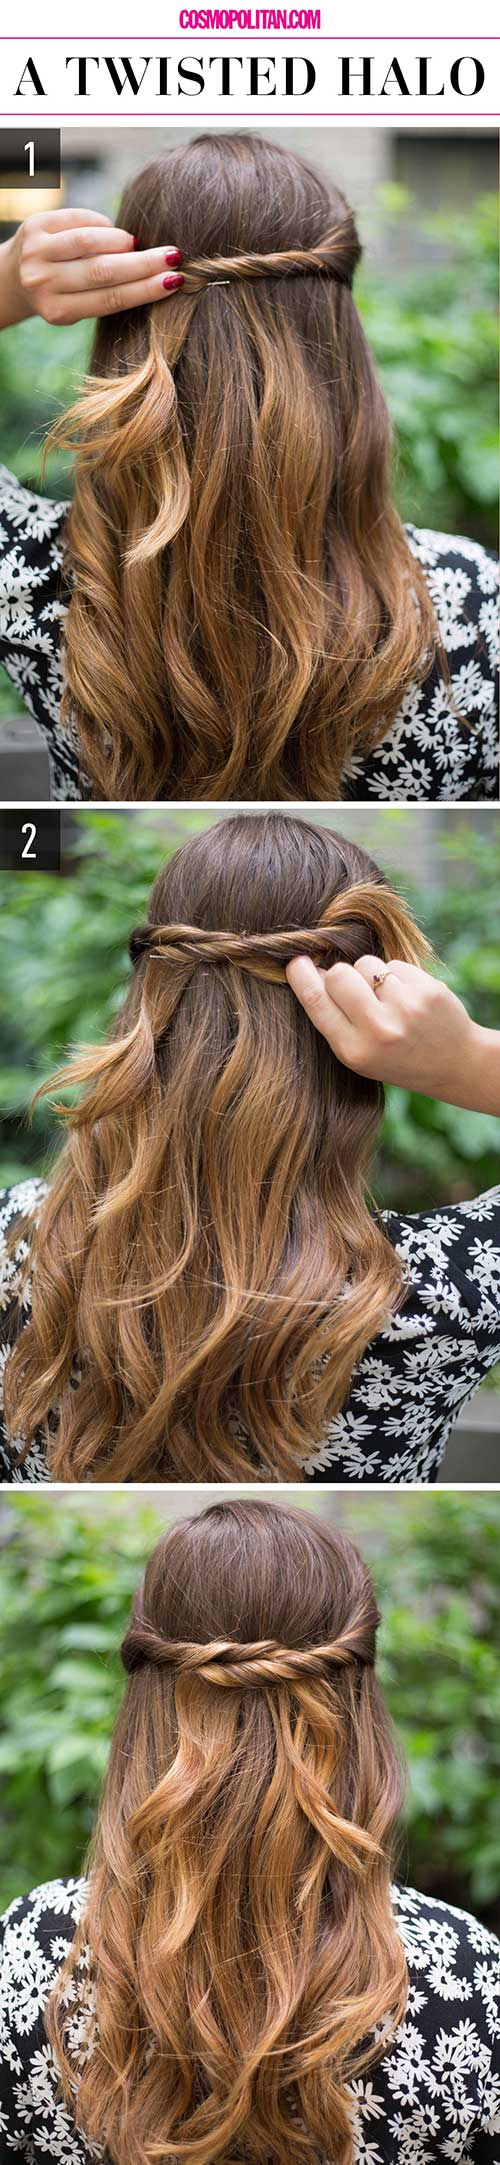 Twisted-Halo Awesome Hairstyles For Girls With Long Hair